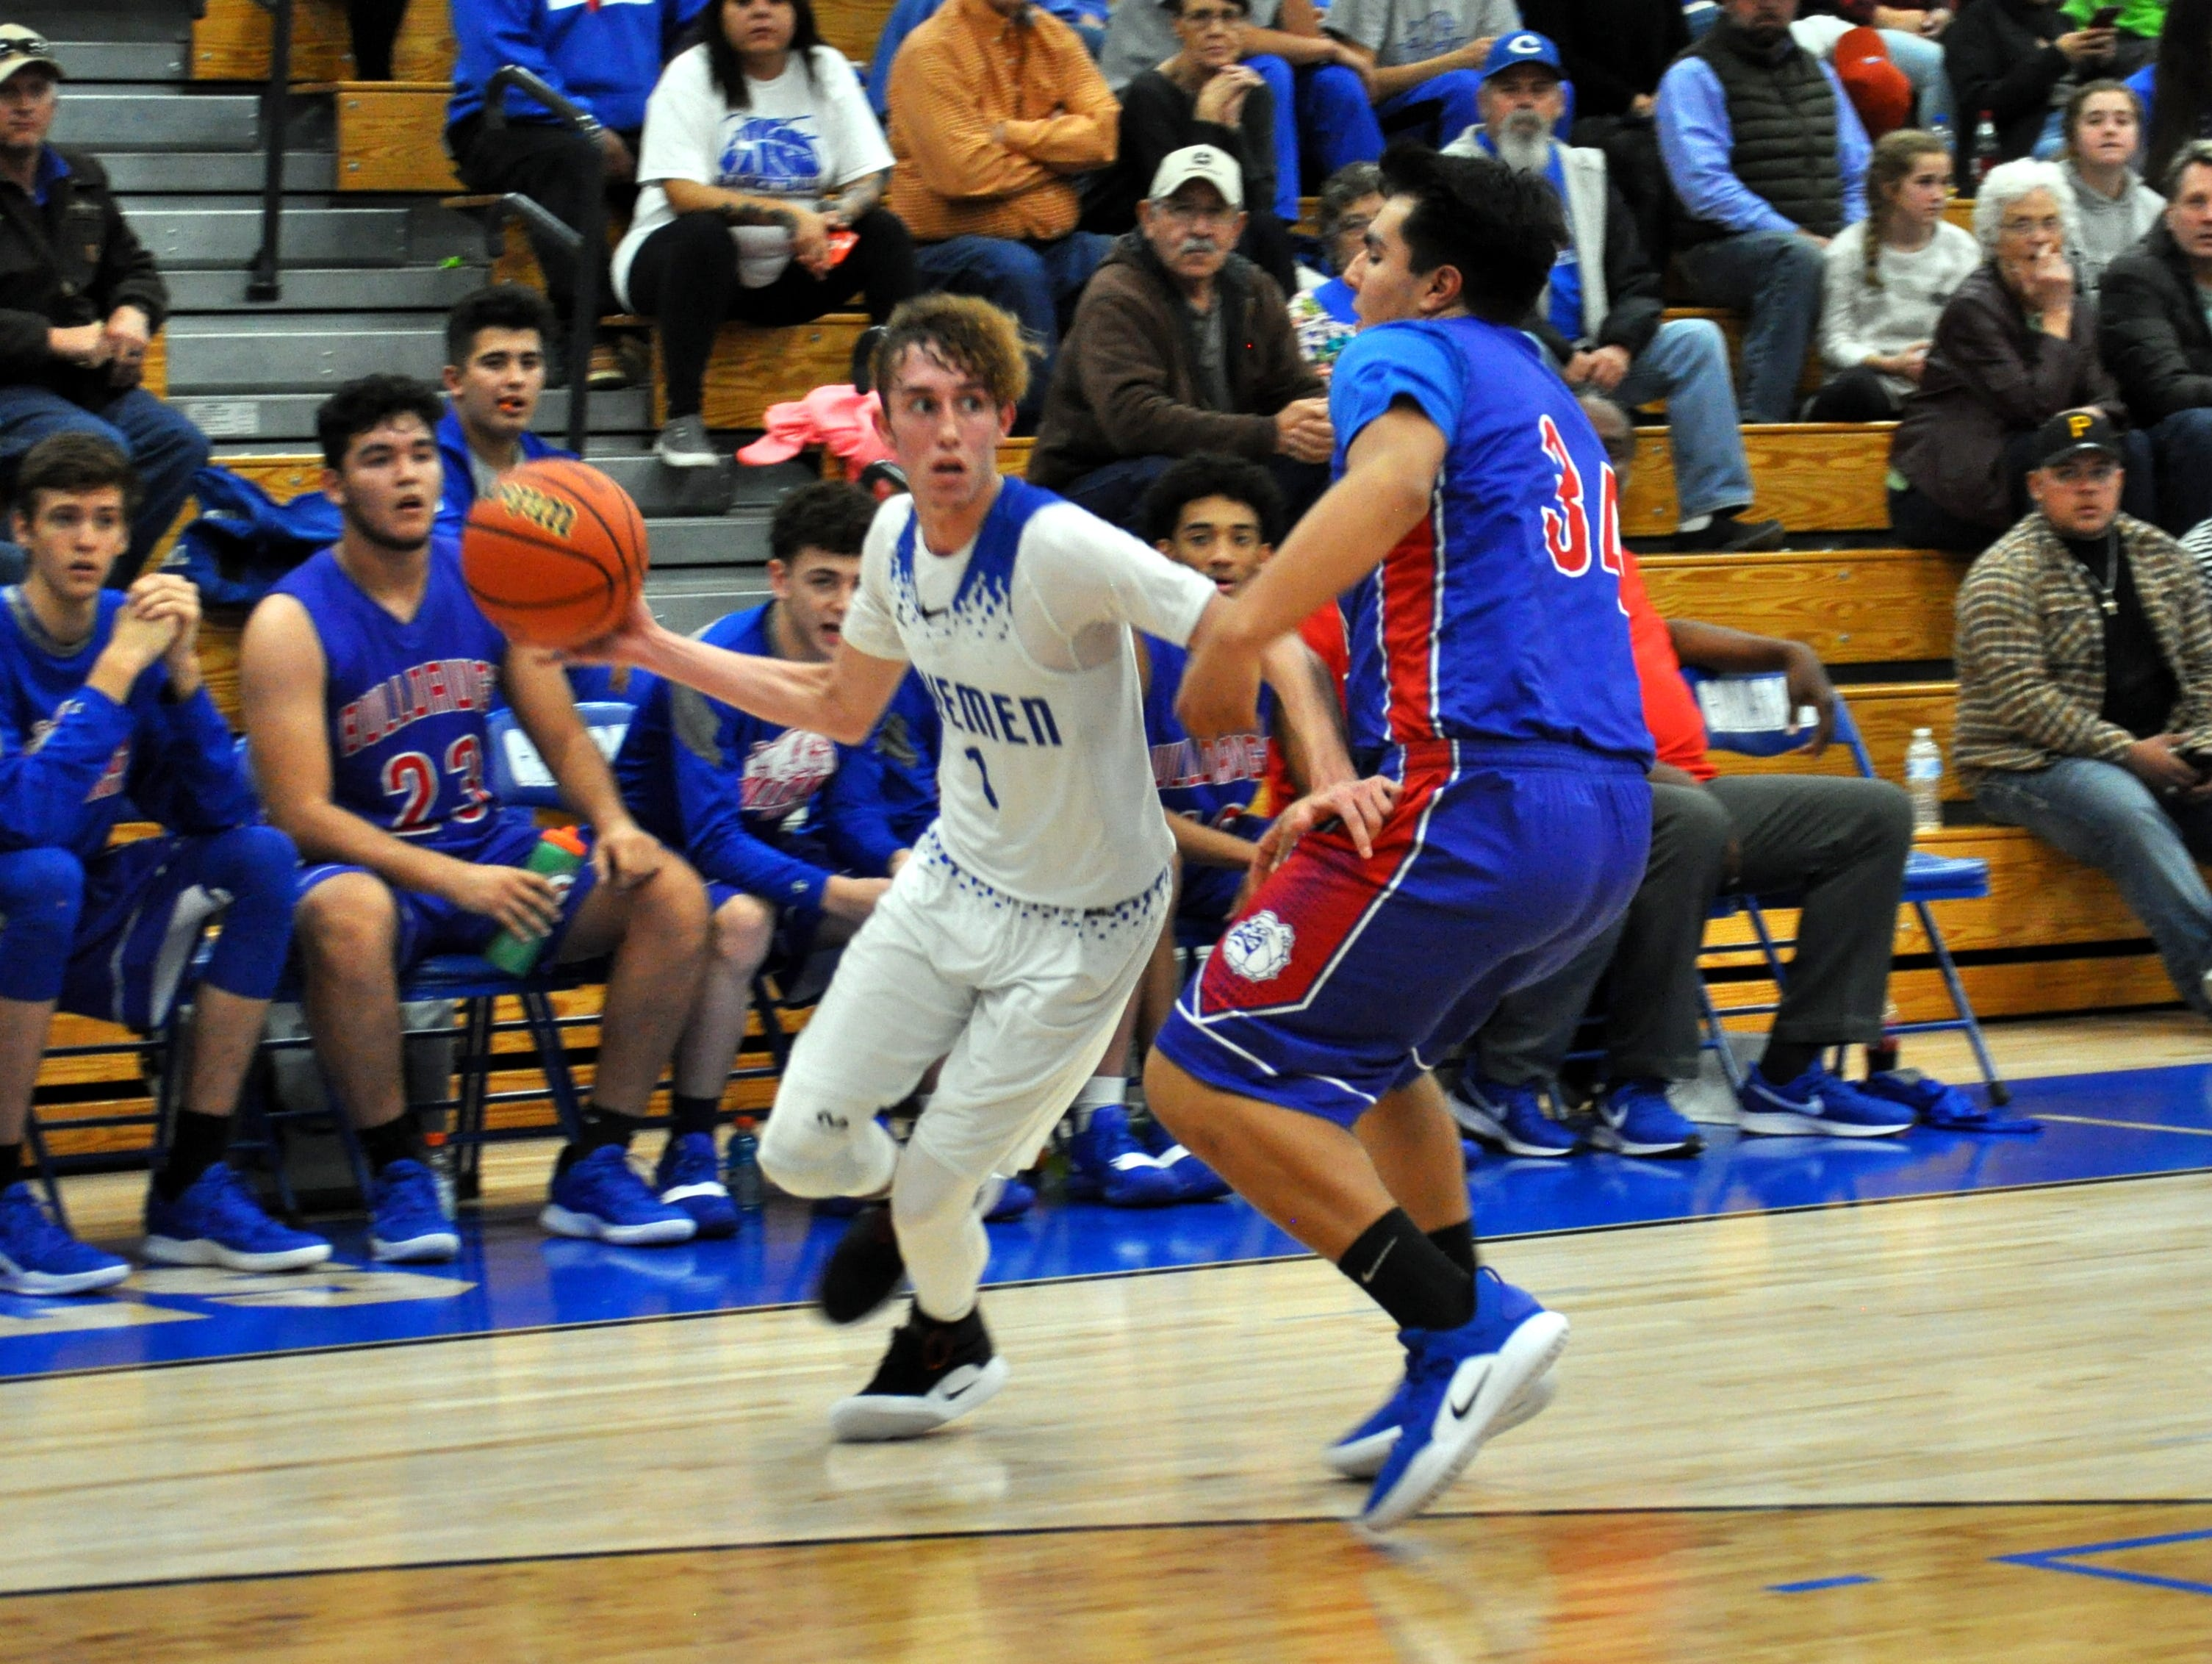 Josh Sillas looks for an open teammate during Friday's game against Las Cruces.